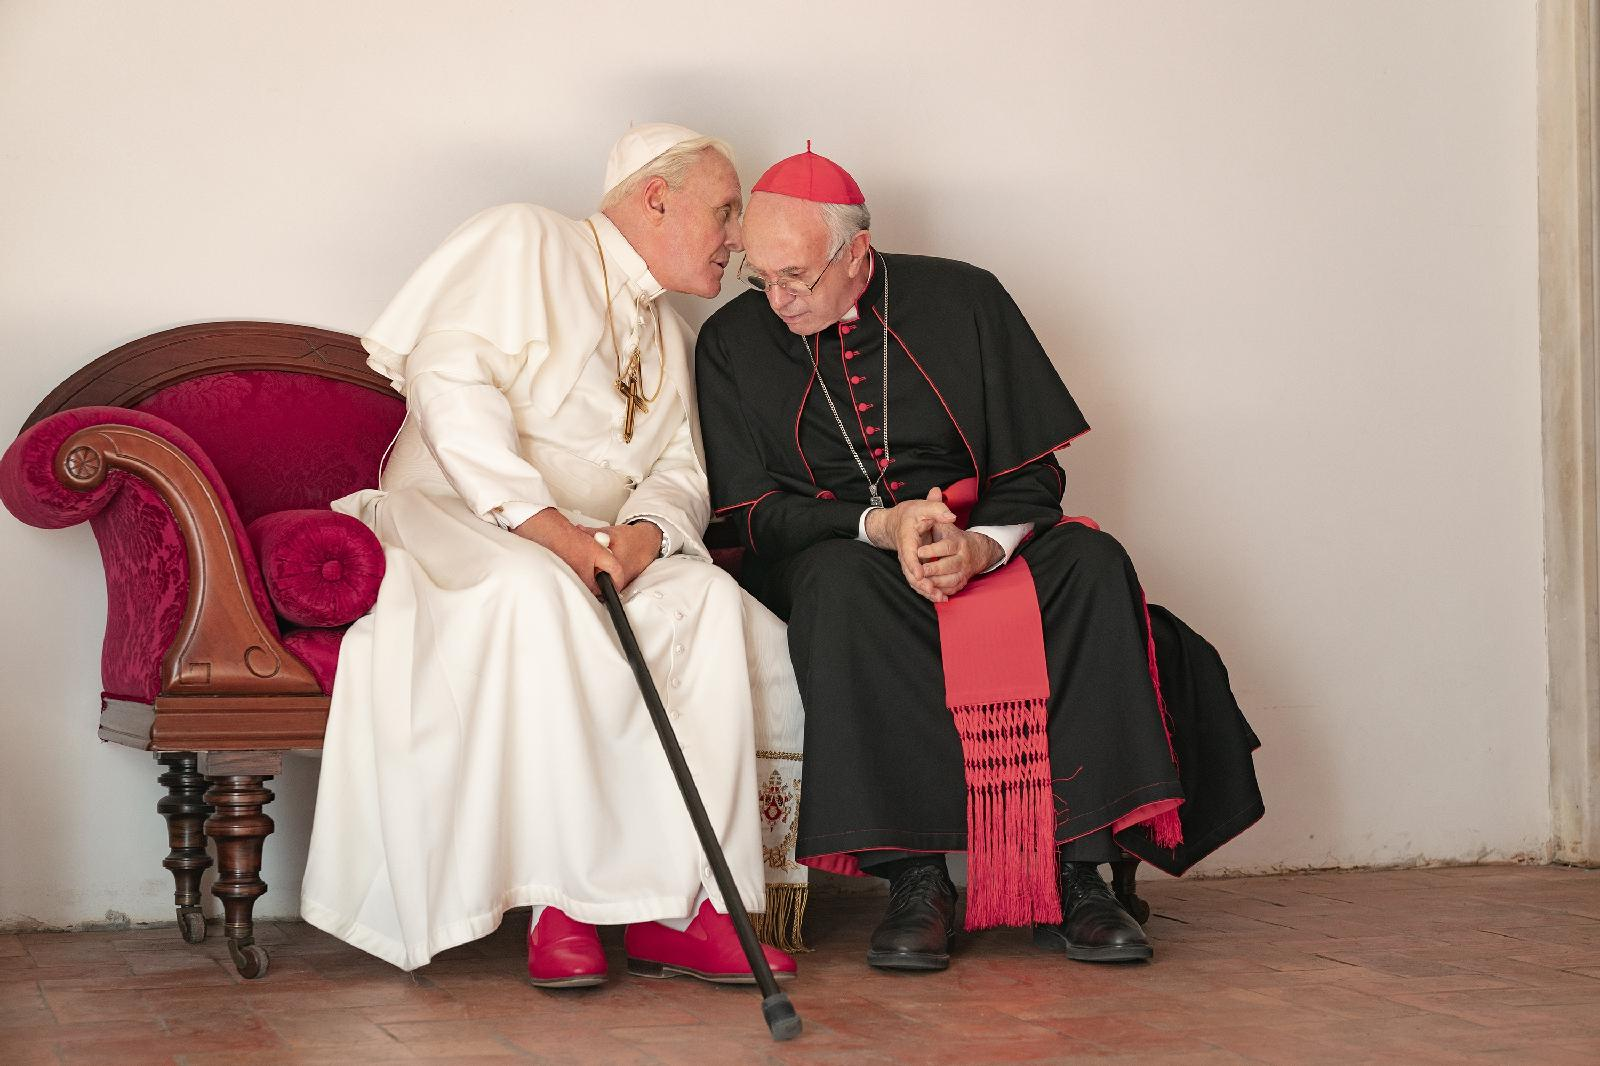 The Two Popes | Image: CNS